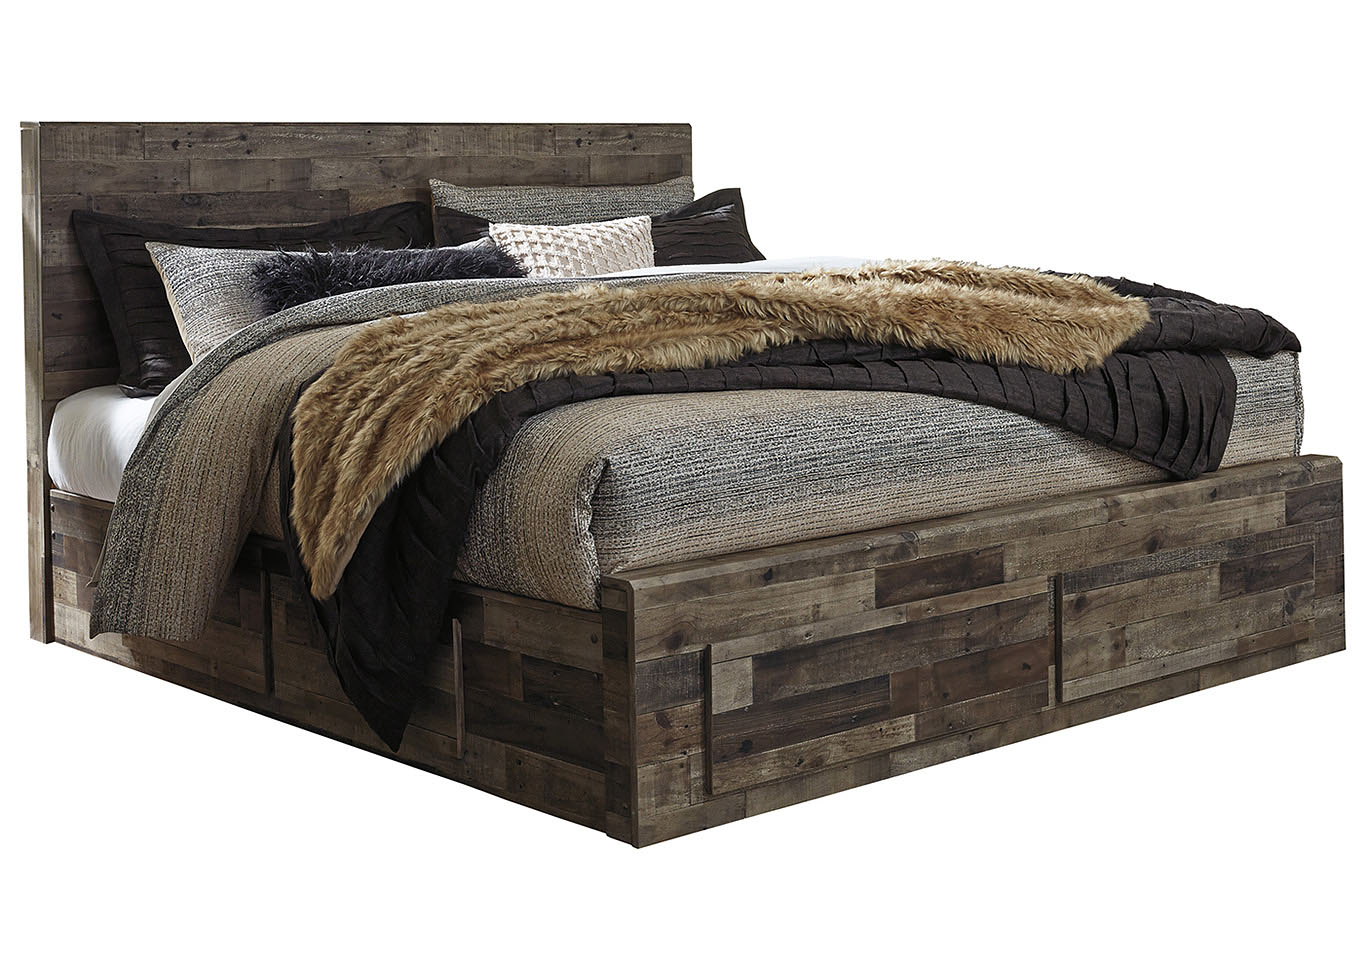 Derekson Multi Gray King Storage Bed,Signature Design By Ashley